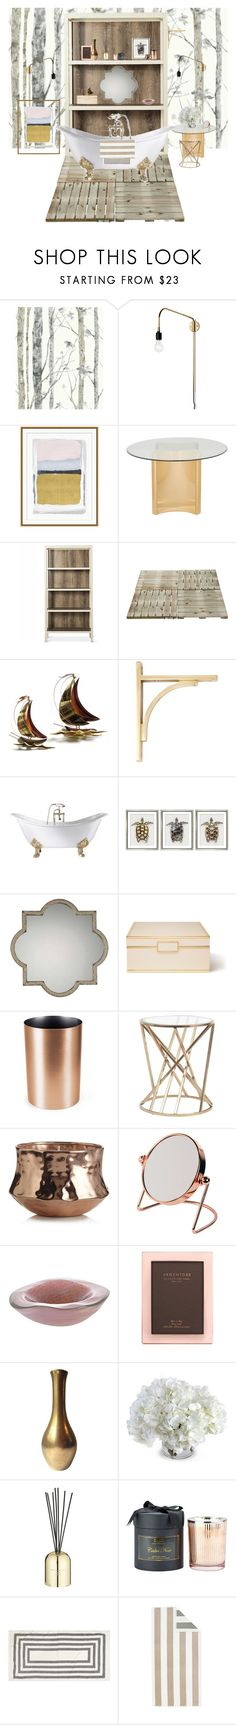 """Into The Woods Bathroom Interior Design"" by lua4lma ❤ liked on Polyvore featuring interior, interiors, interior design, home, home decor, interior decorating, RoomMates Decor, Menu, Williams-Sonoma and Safavieh"